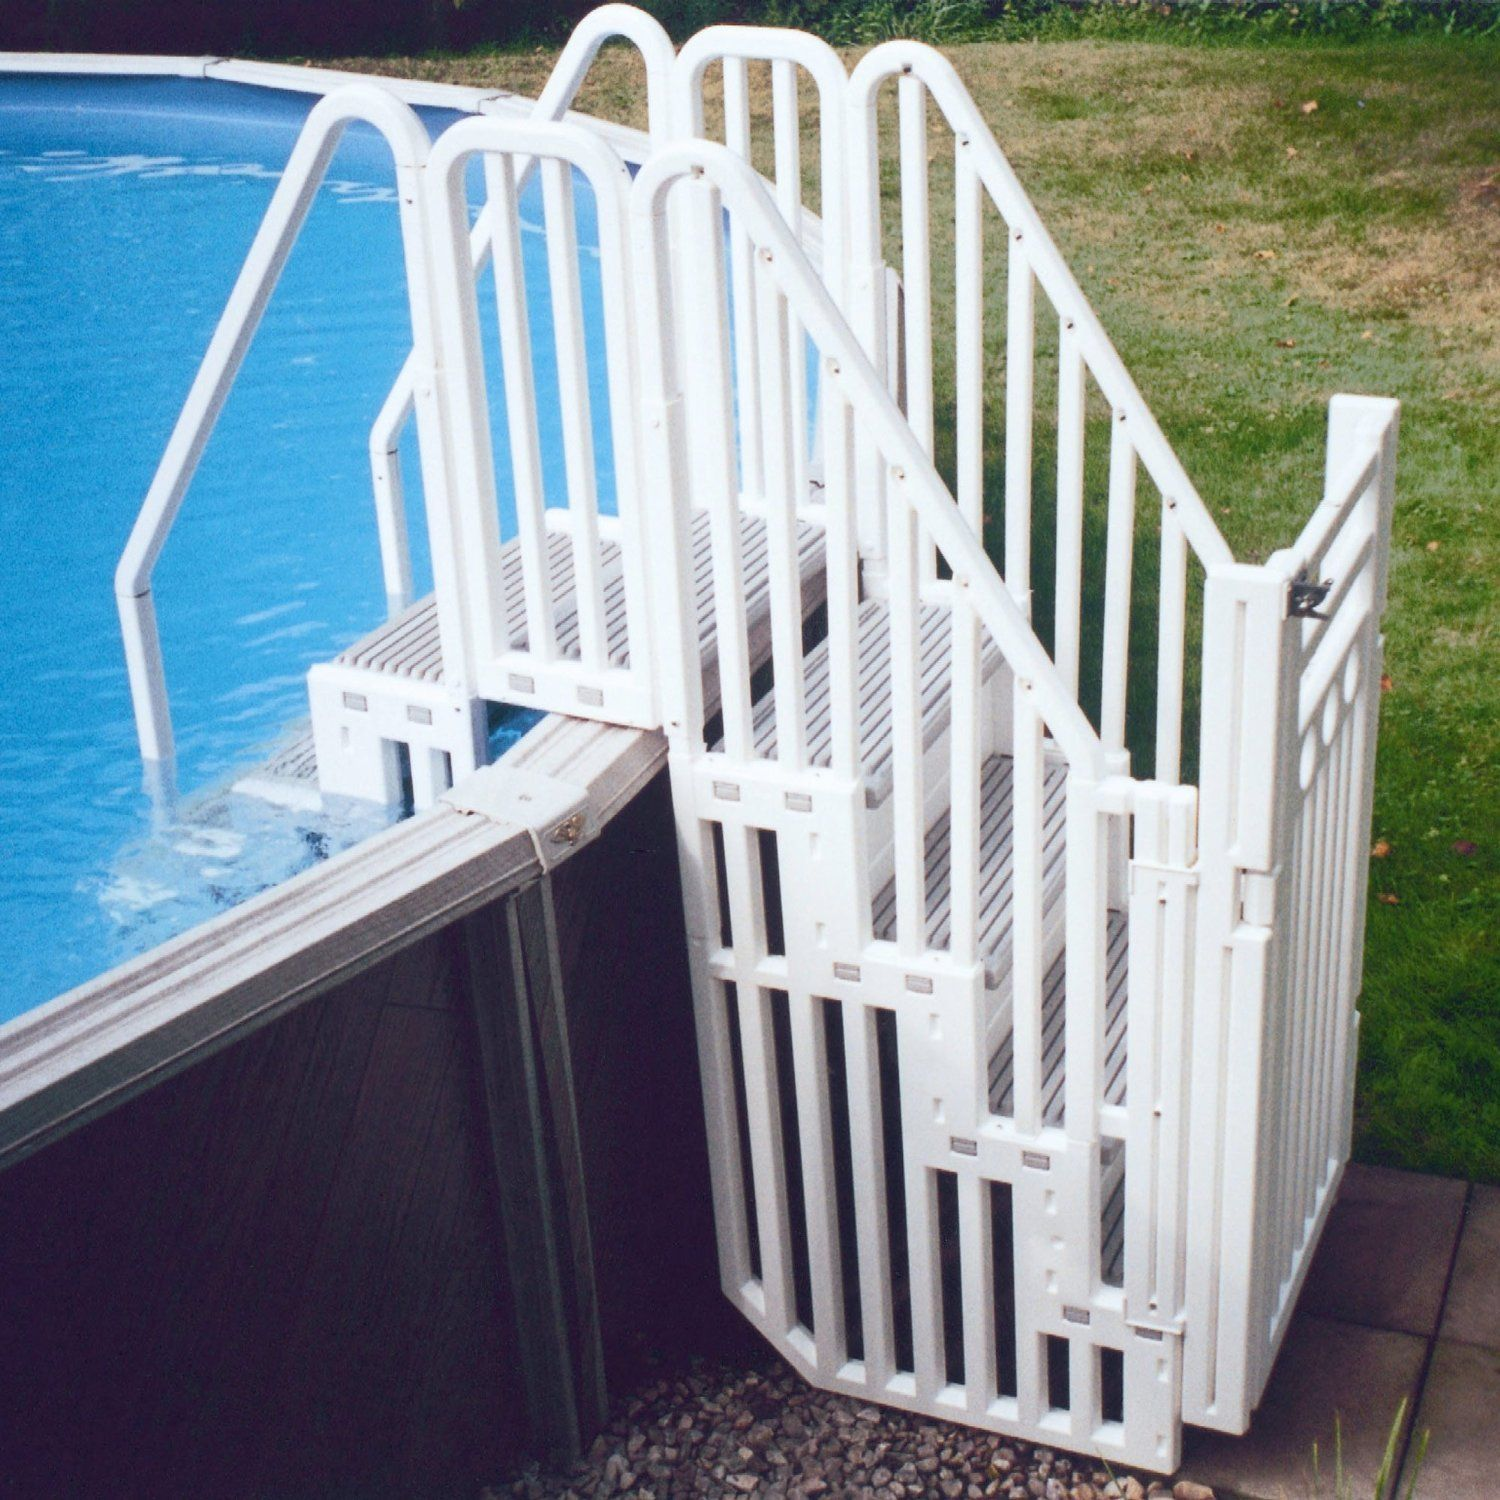 Best above ground pool ladders reviews the pool cleaner for Above ground pool decks and ladders